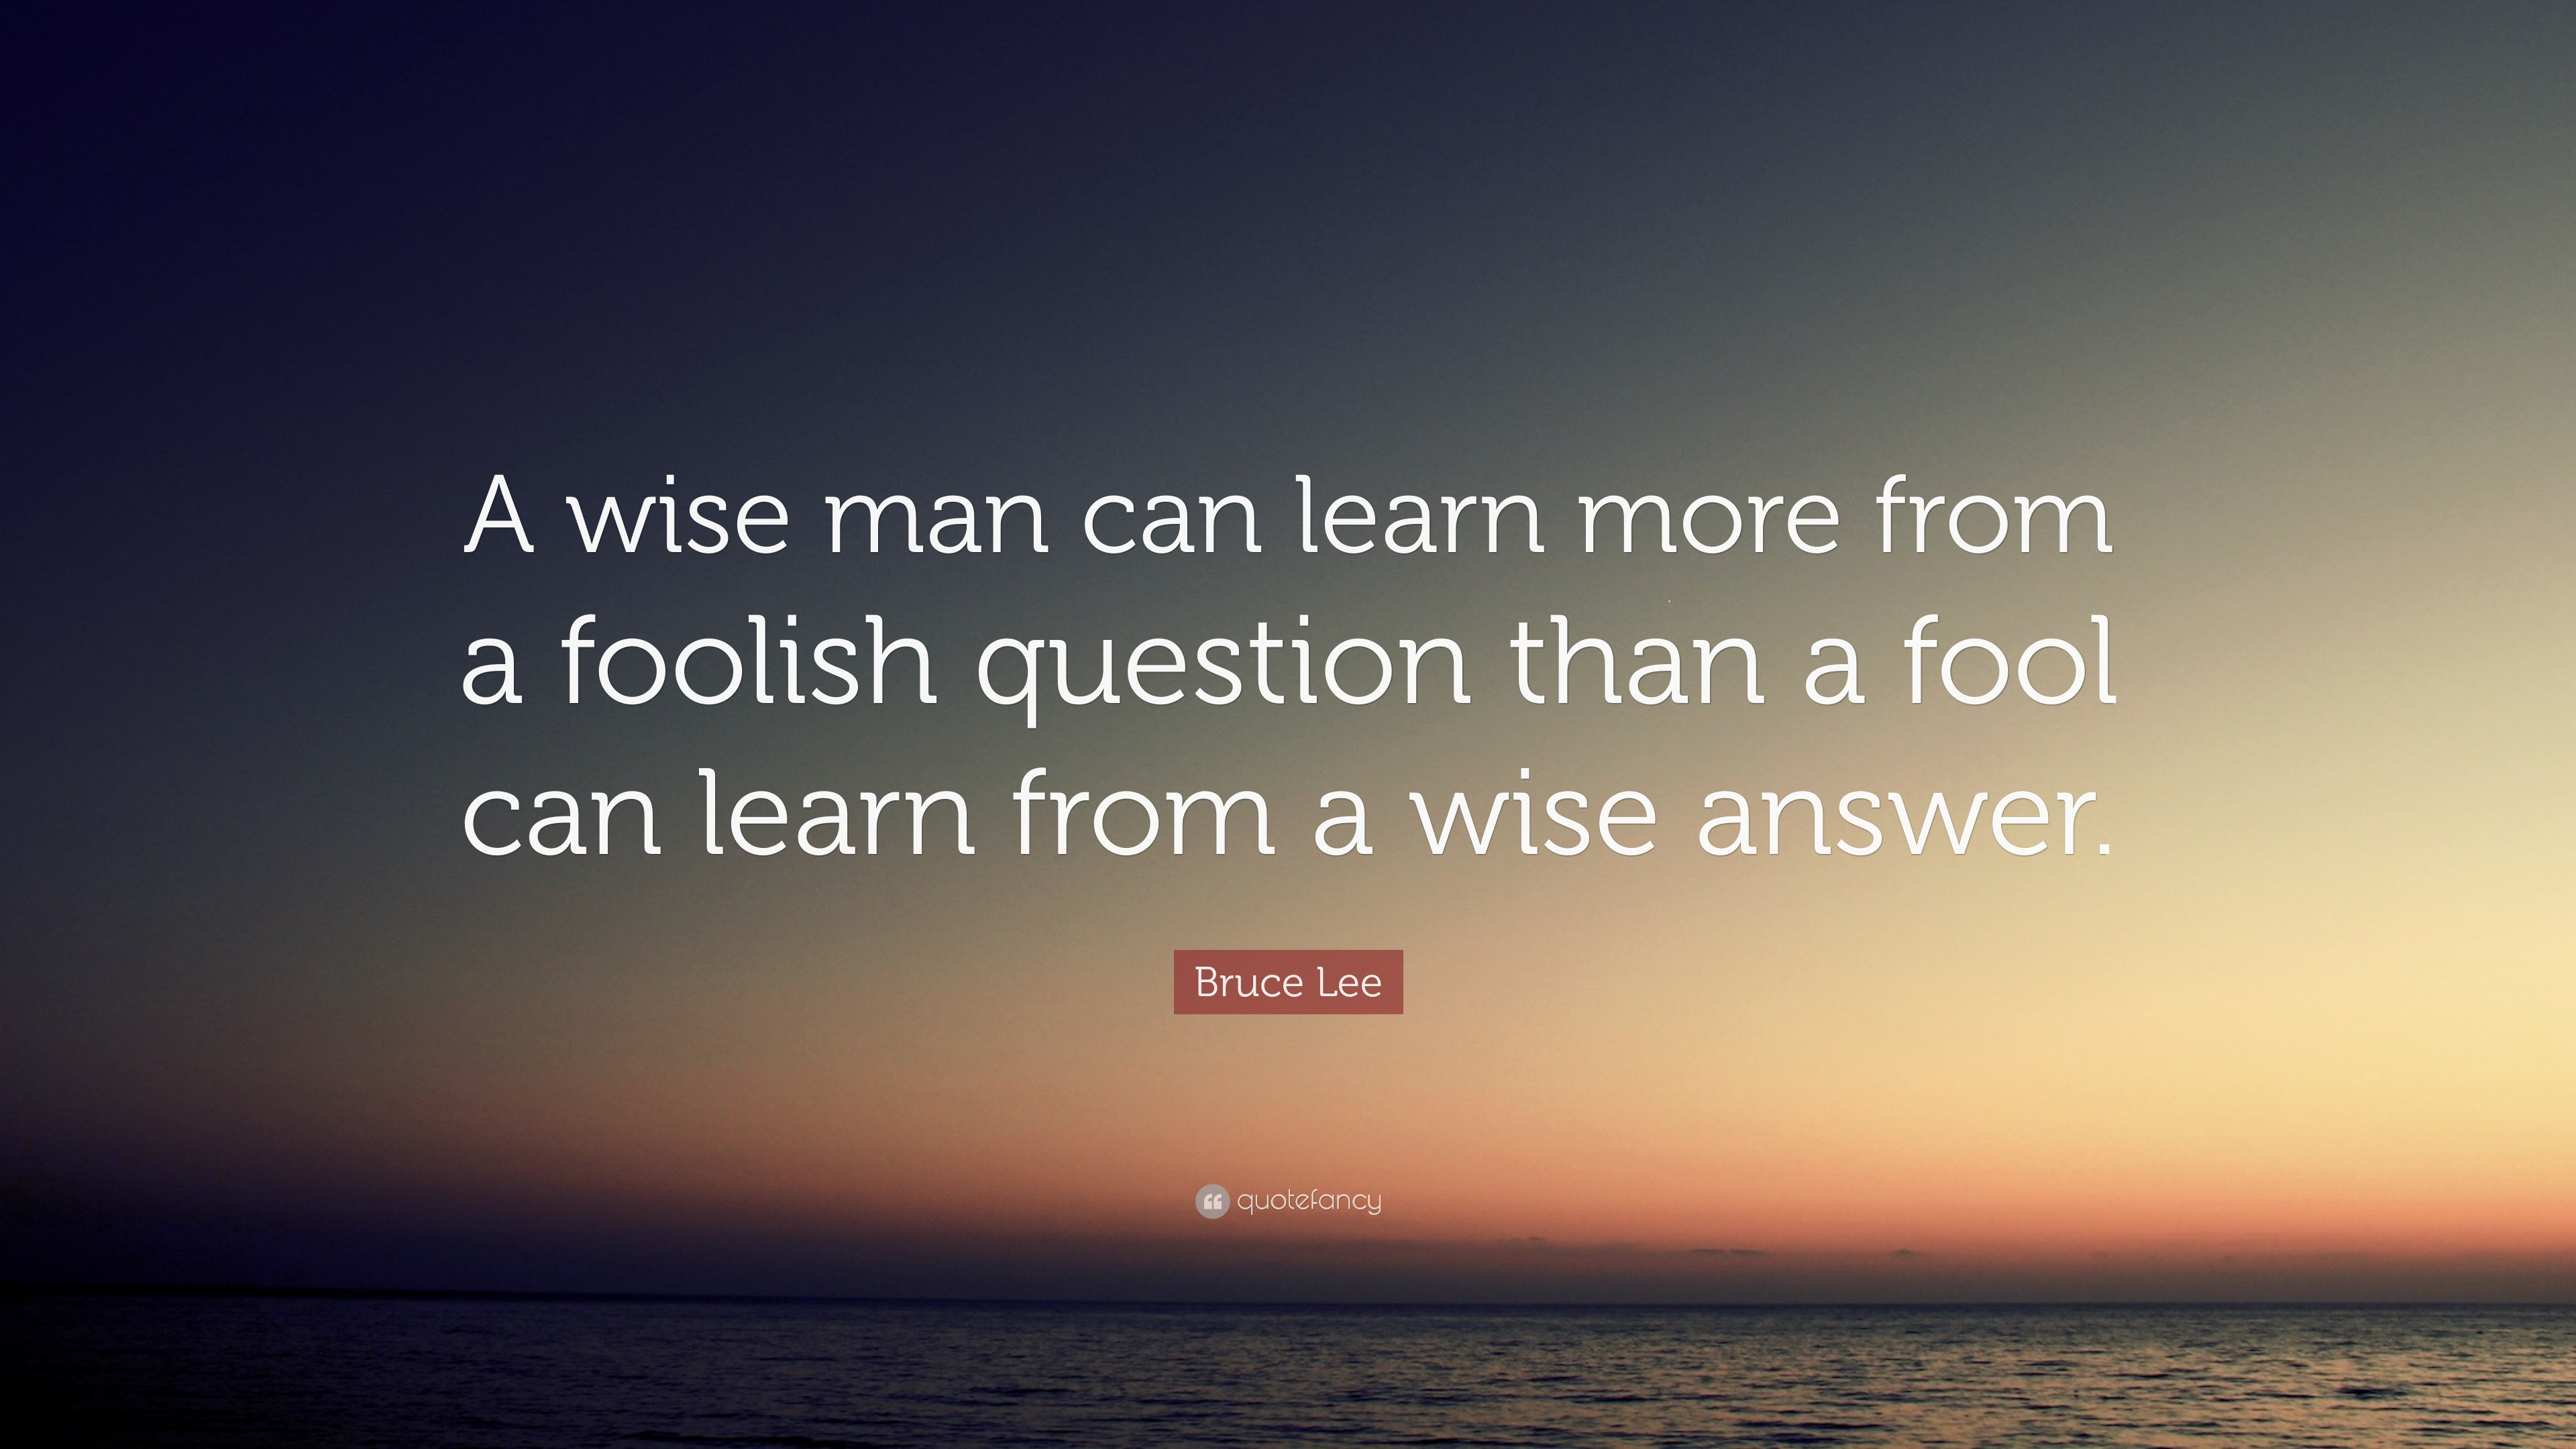 A wise man can learn more from a foolish question by Bruce Lee